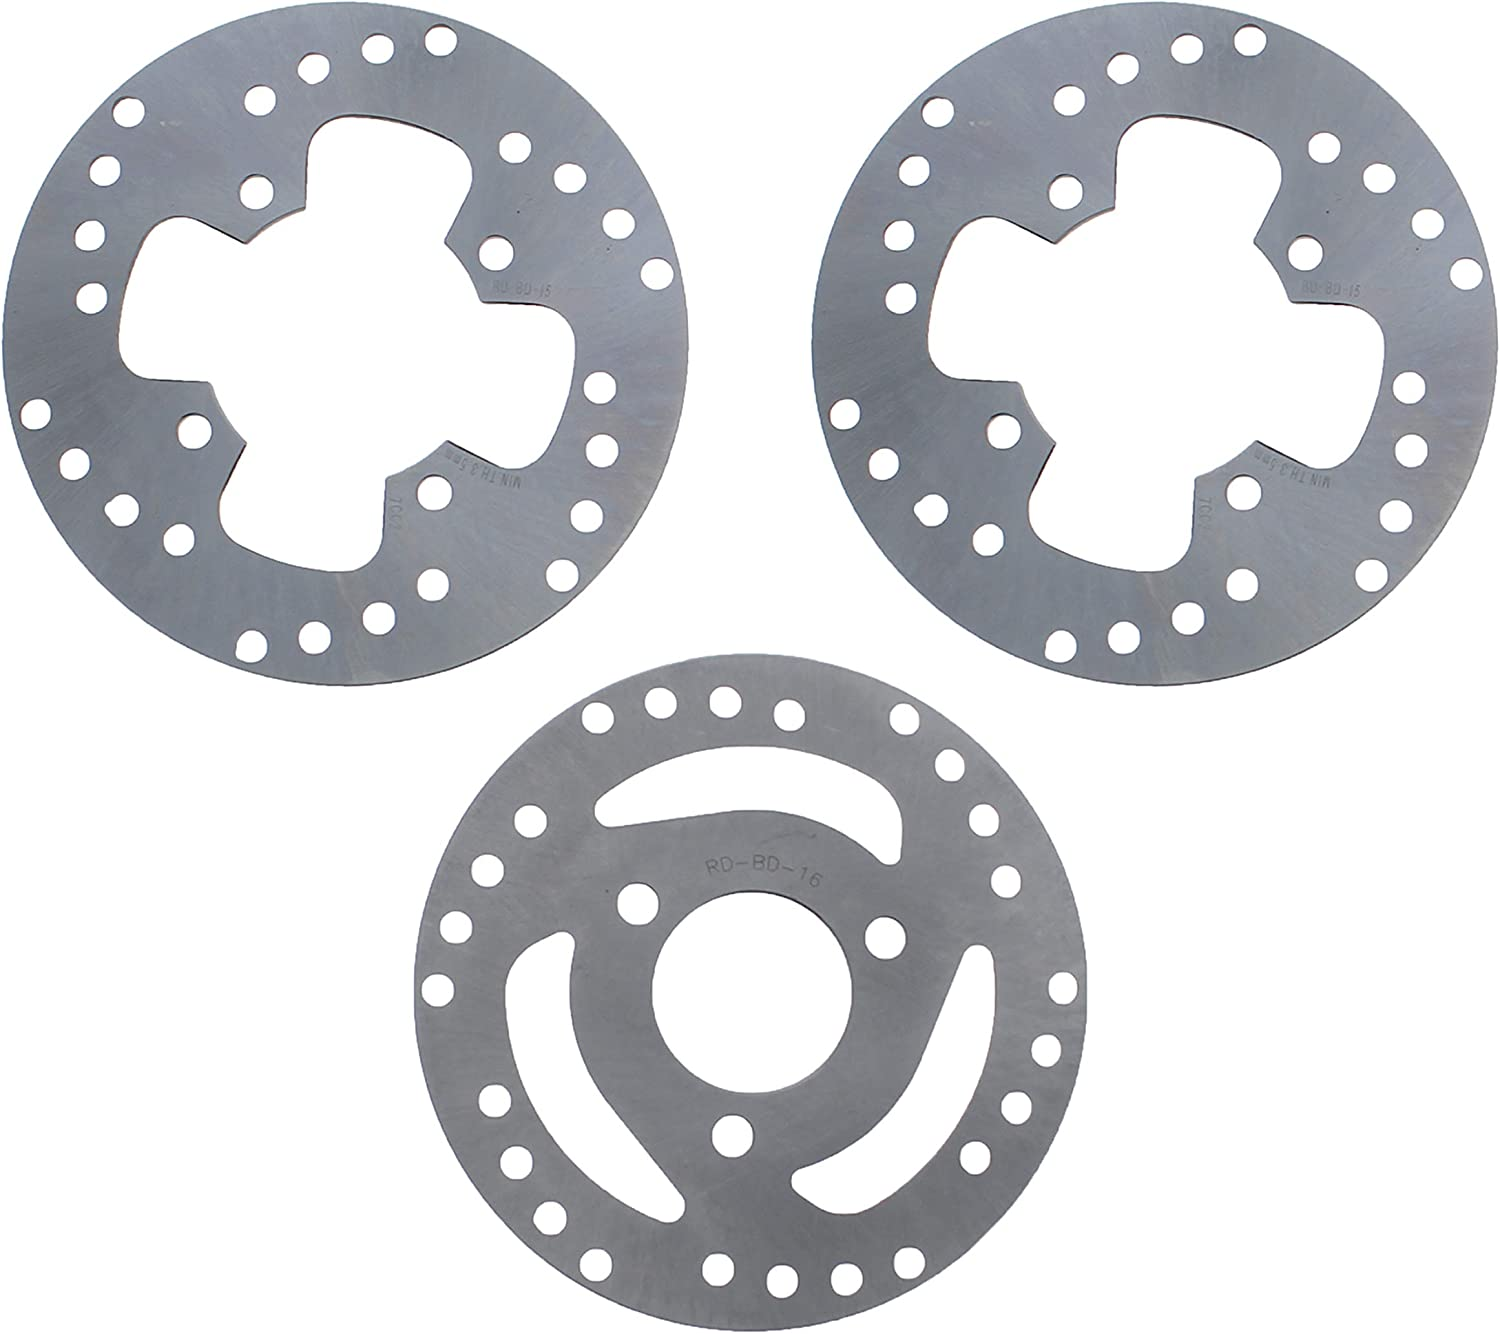 FRONT REAR BRAKE PADS FITS POLARIS TRAIL BOSS 325 2001 2002